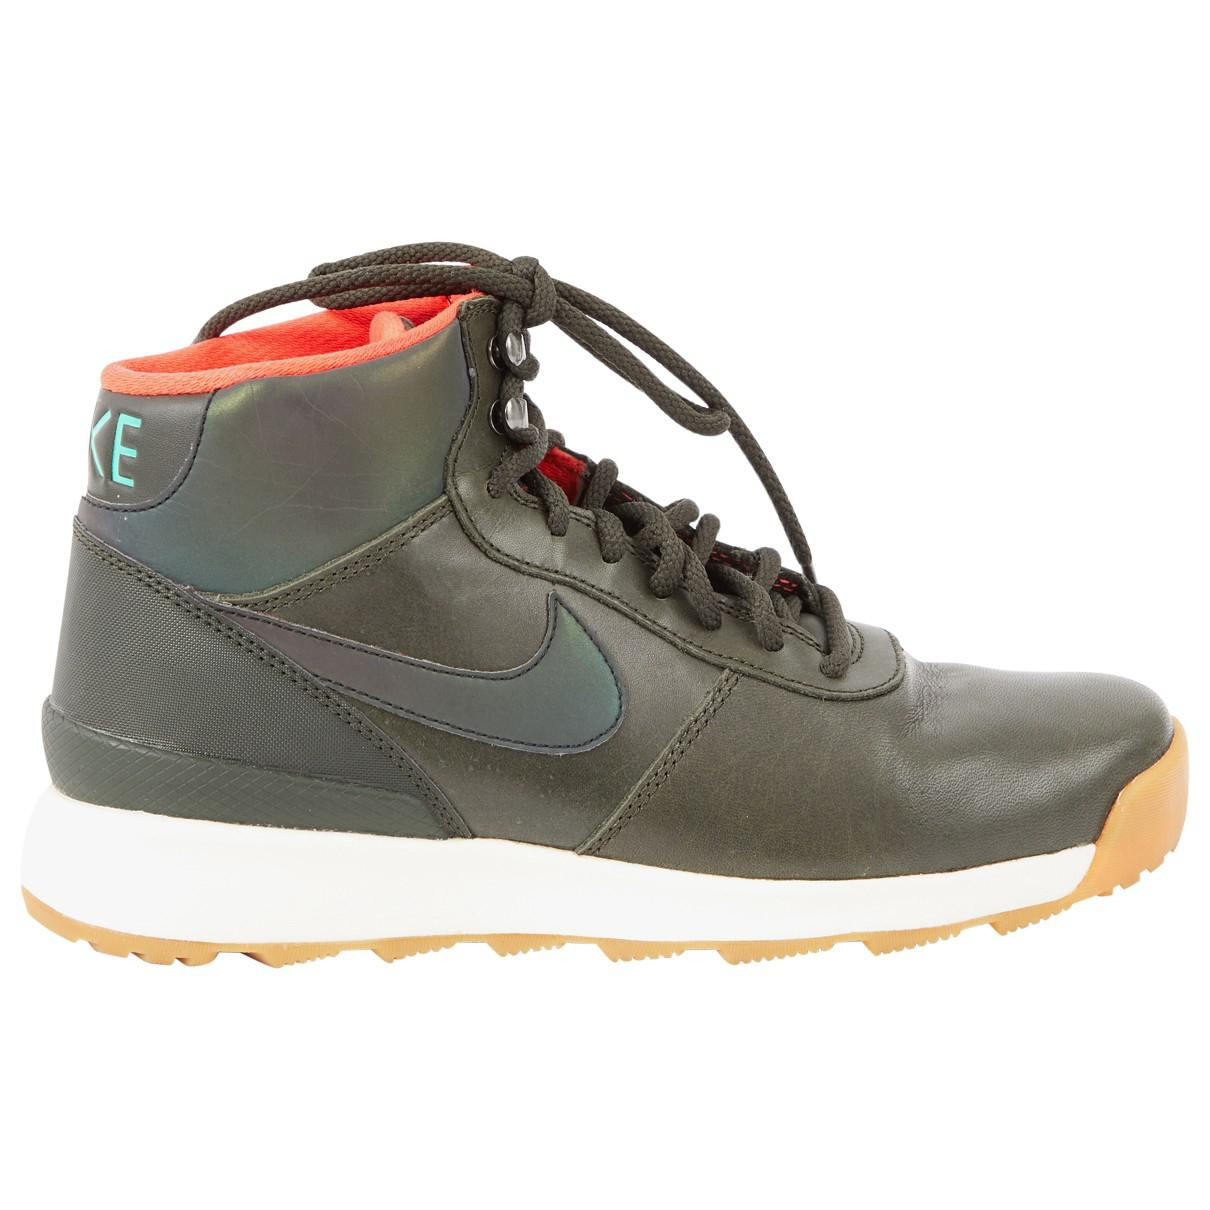 Pre-owned - Leather trainers Nike LFbjV